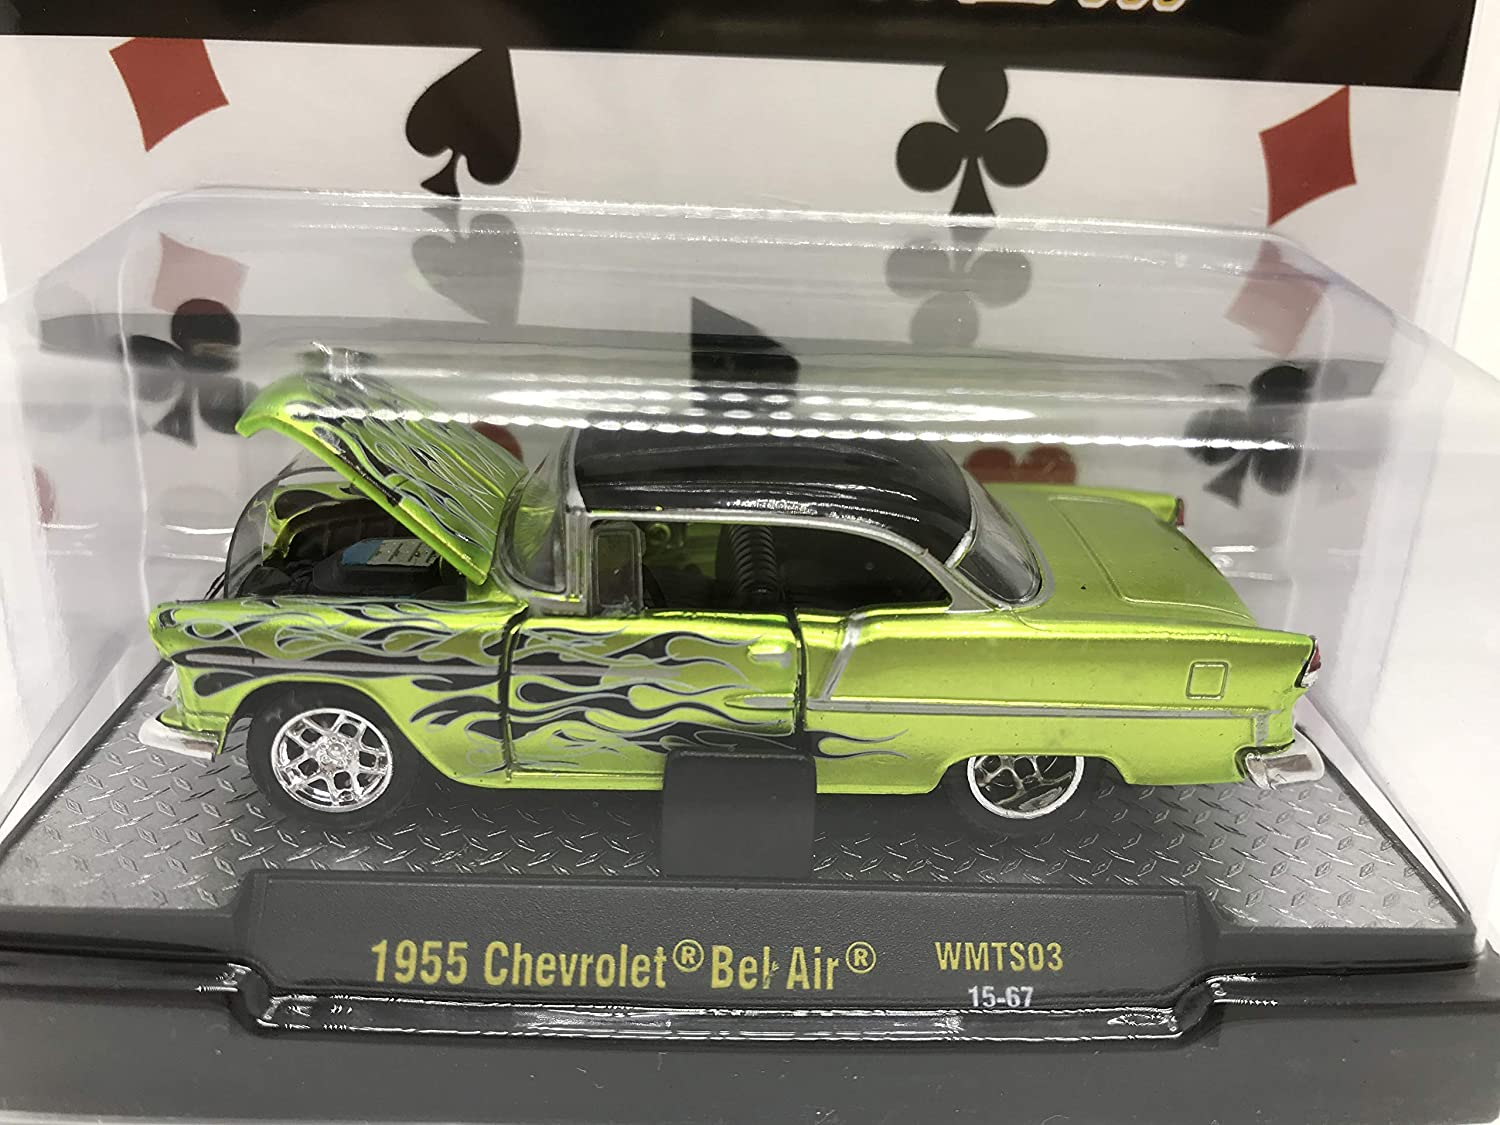 M2 Machines by M2 Collectible Wild-Cards 1955 Chevy Bel Air 1:64 Scale WMTS03 15-67 Neon Green//Black Flames Details Like NO Other!